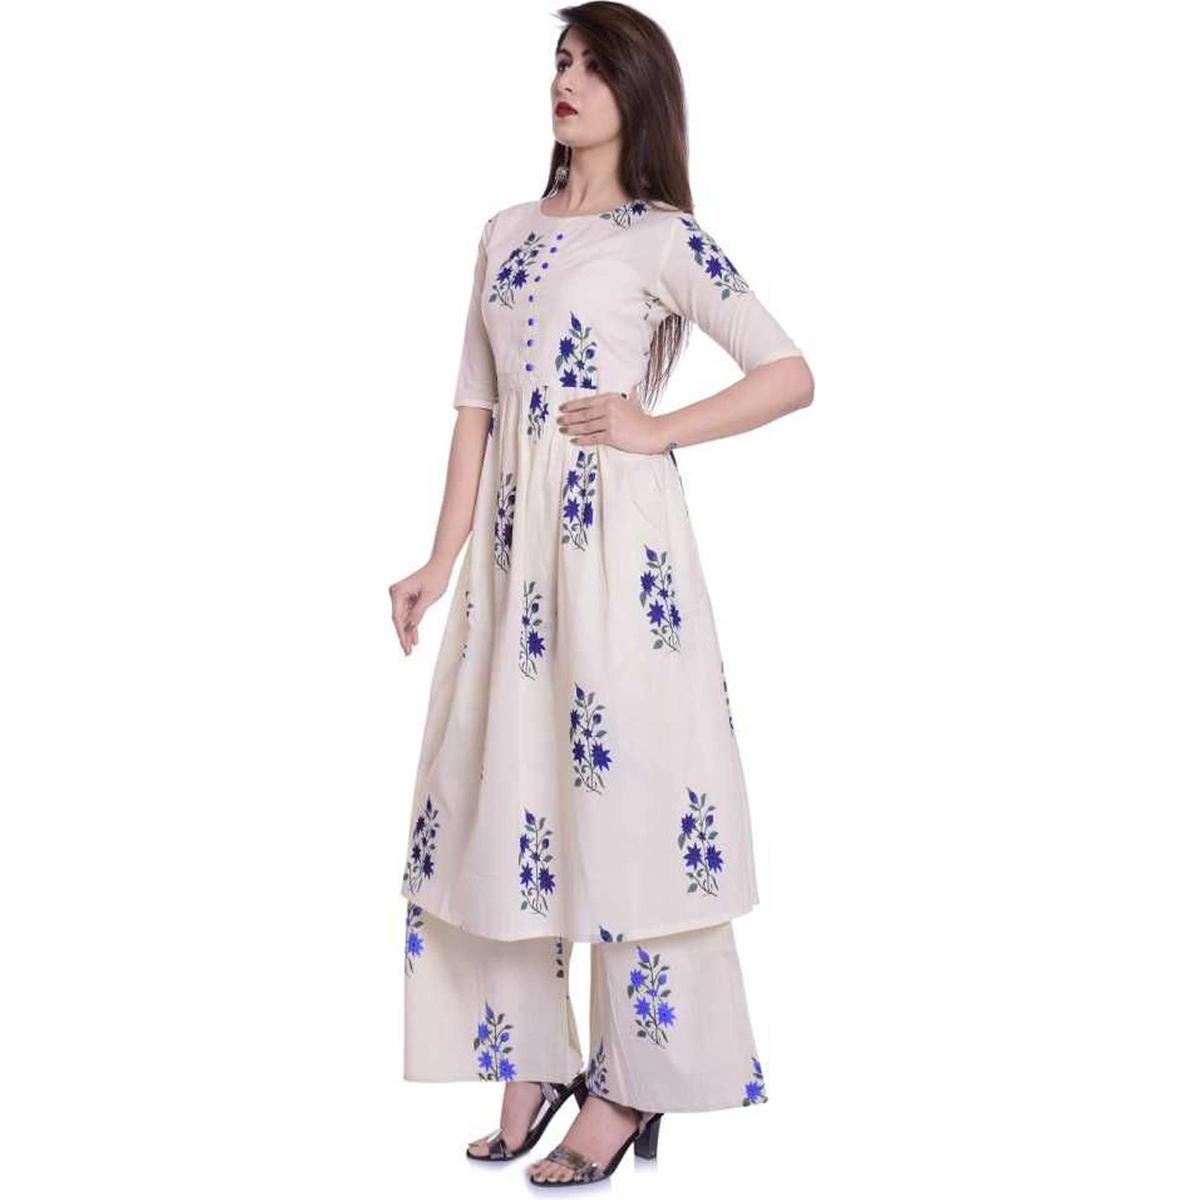 Intricate Off White Colored Casual Wear Floral Printed Cotton Kurti-Palazzo Set